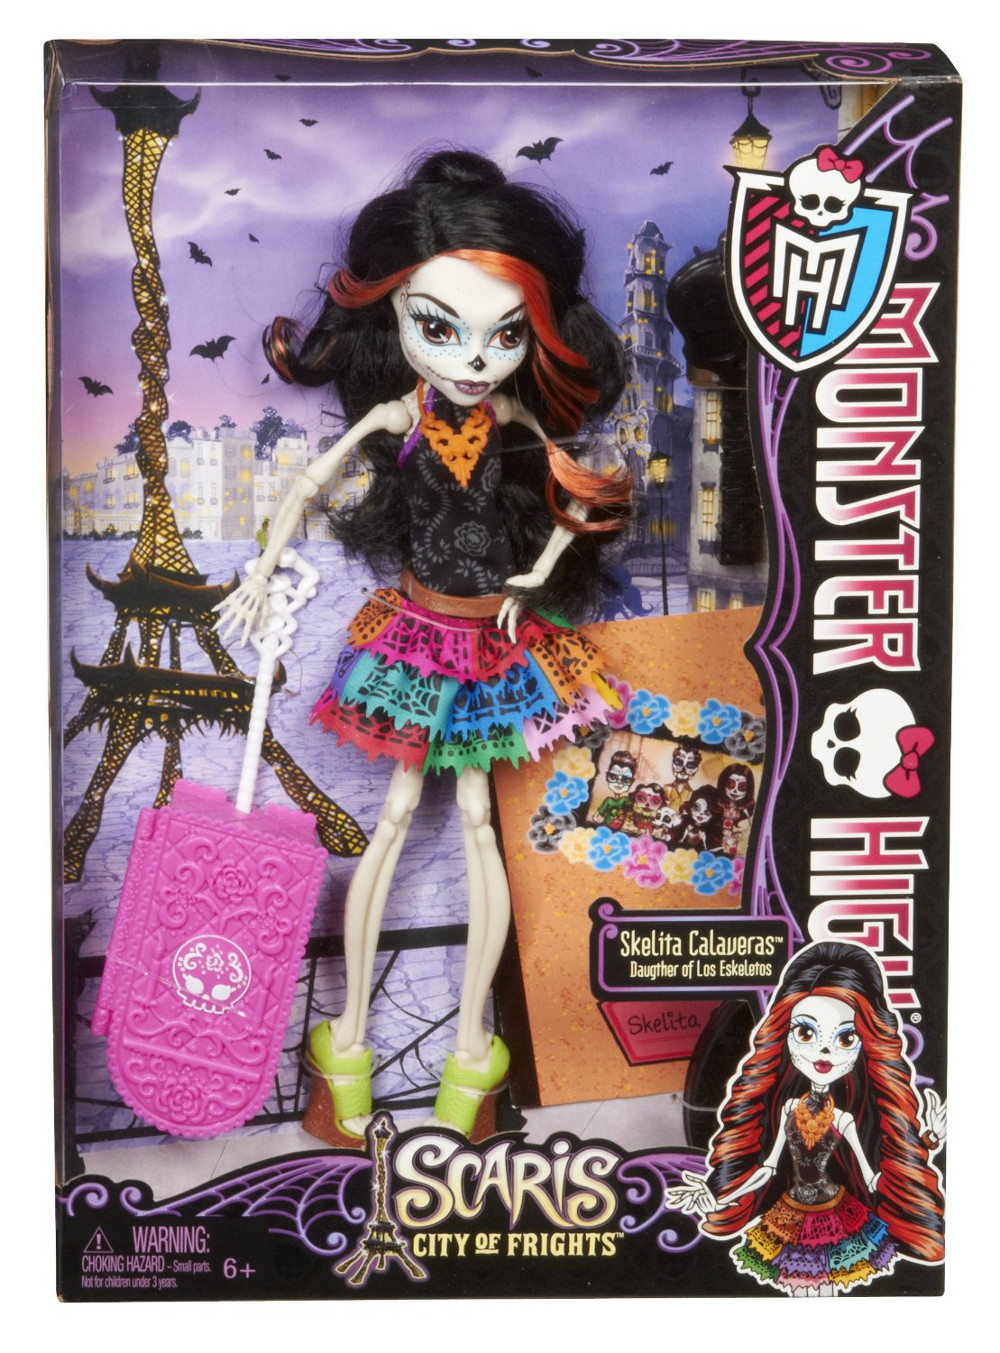 Monster High Toys : Libros y juguetes demagiaxfa toys skelita calaveras